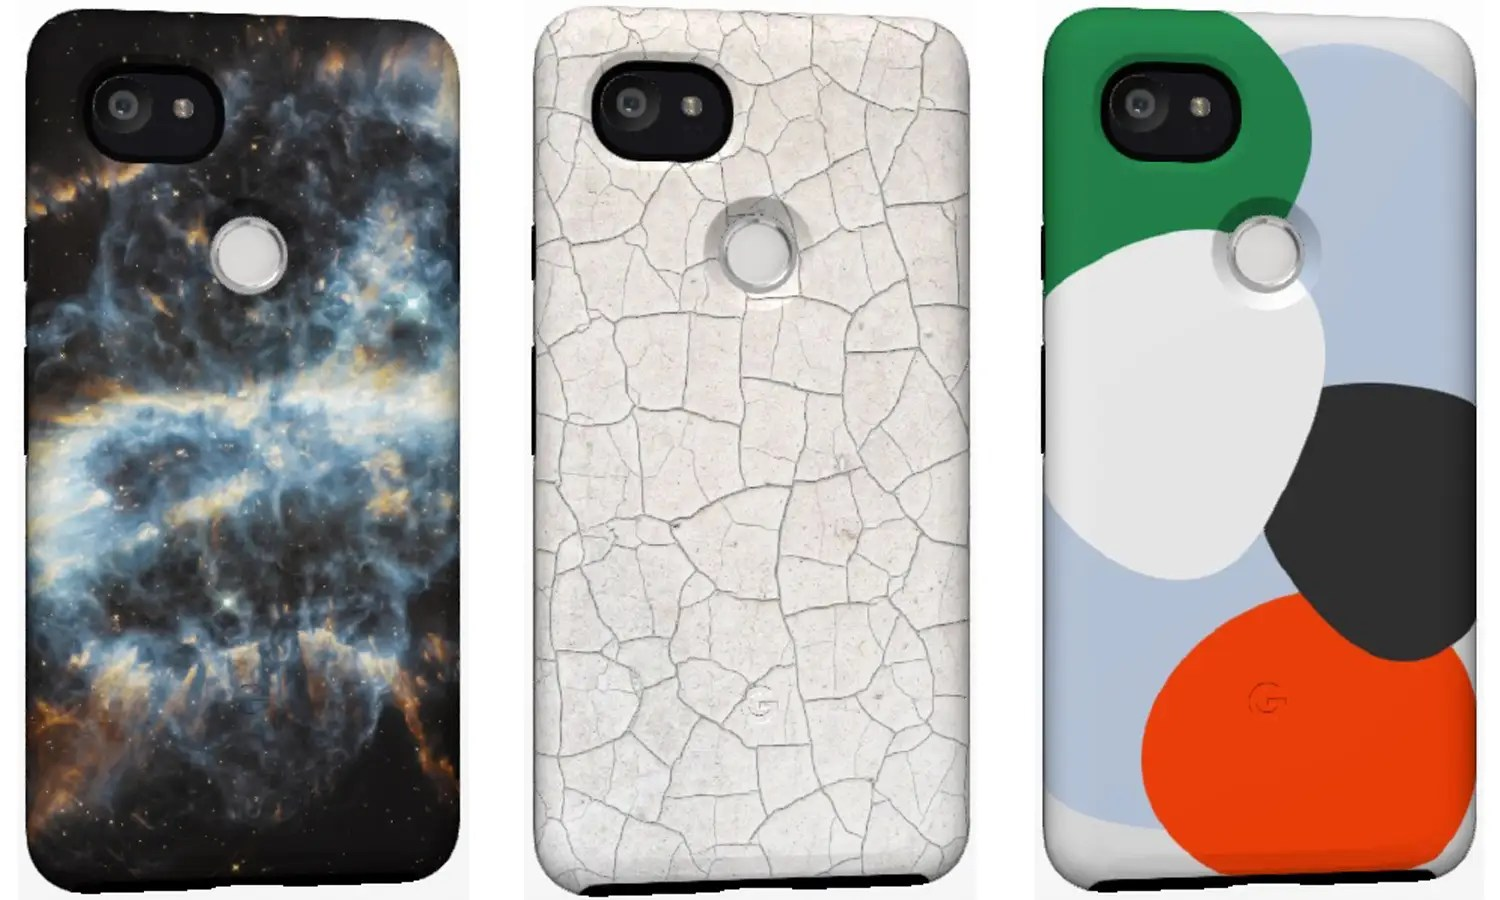 Earth Live Wallpaper Iphone Google Pixel 2 Cases Put Apple S Iphone Cases To Shame